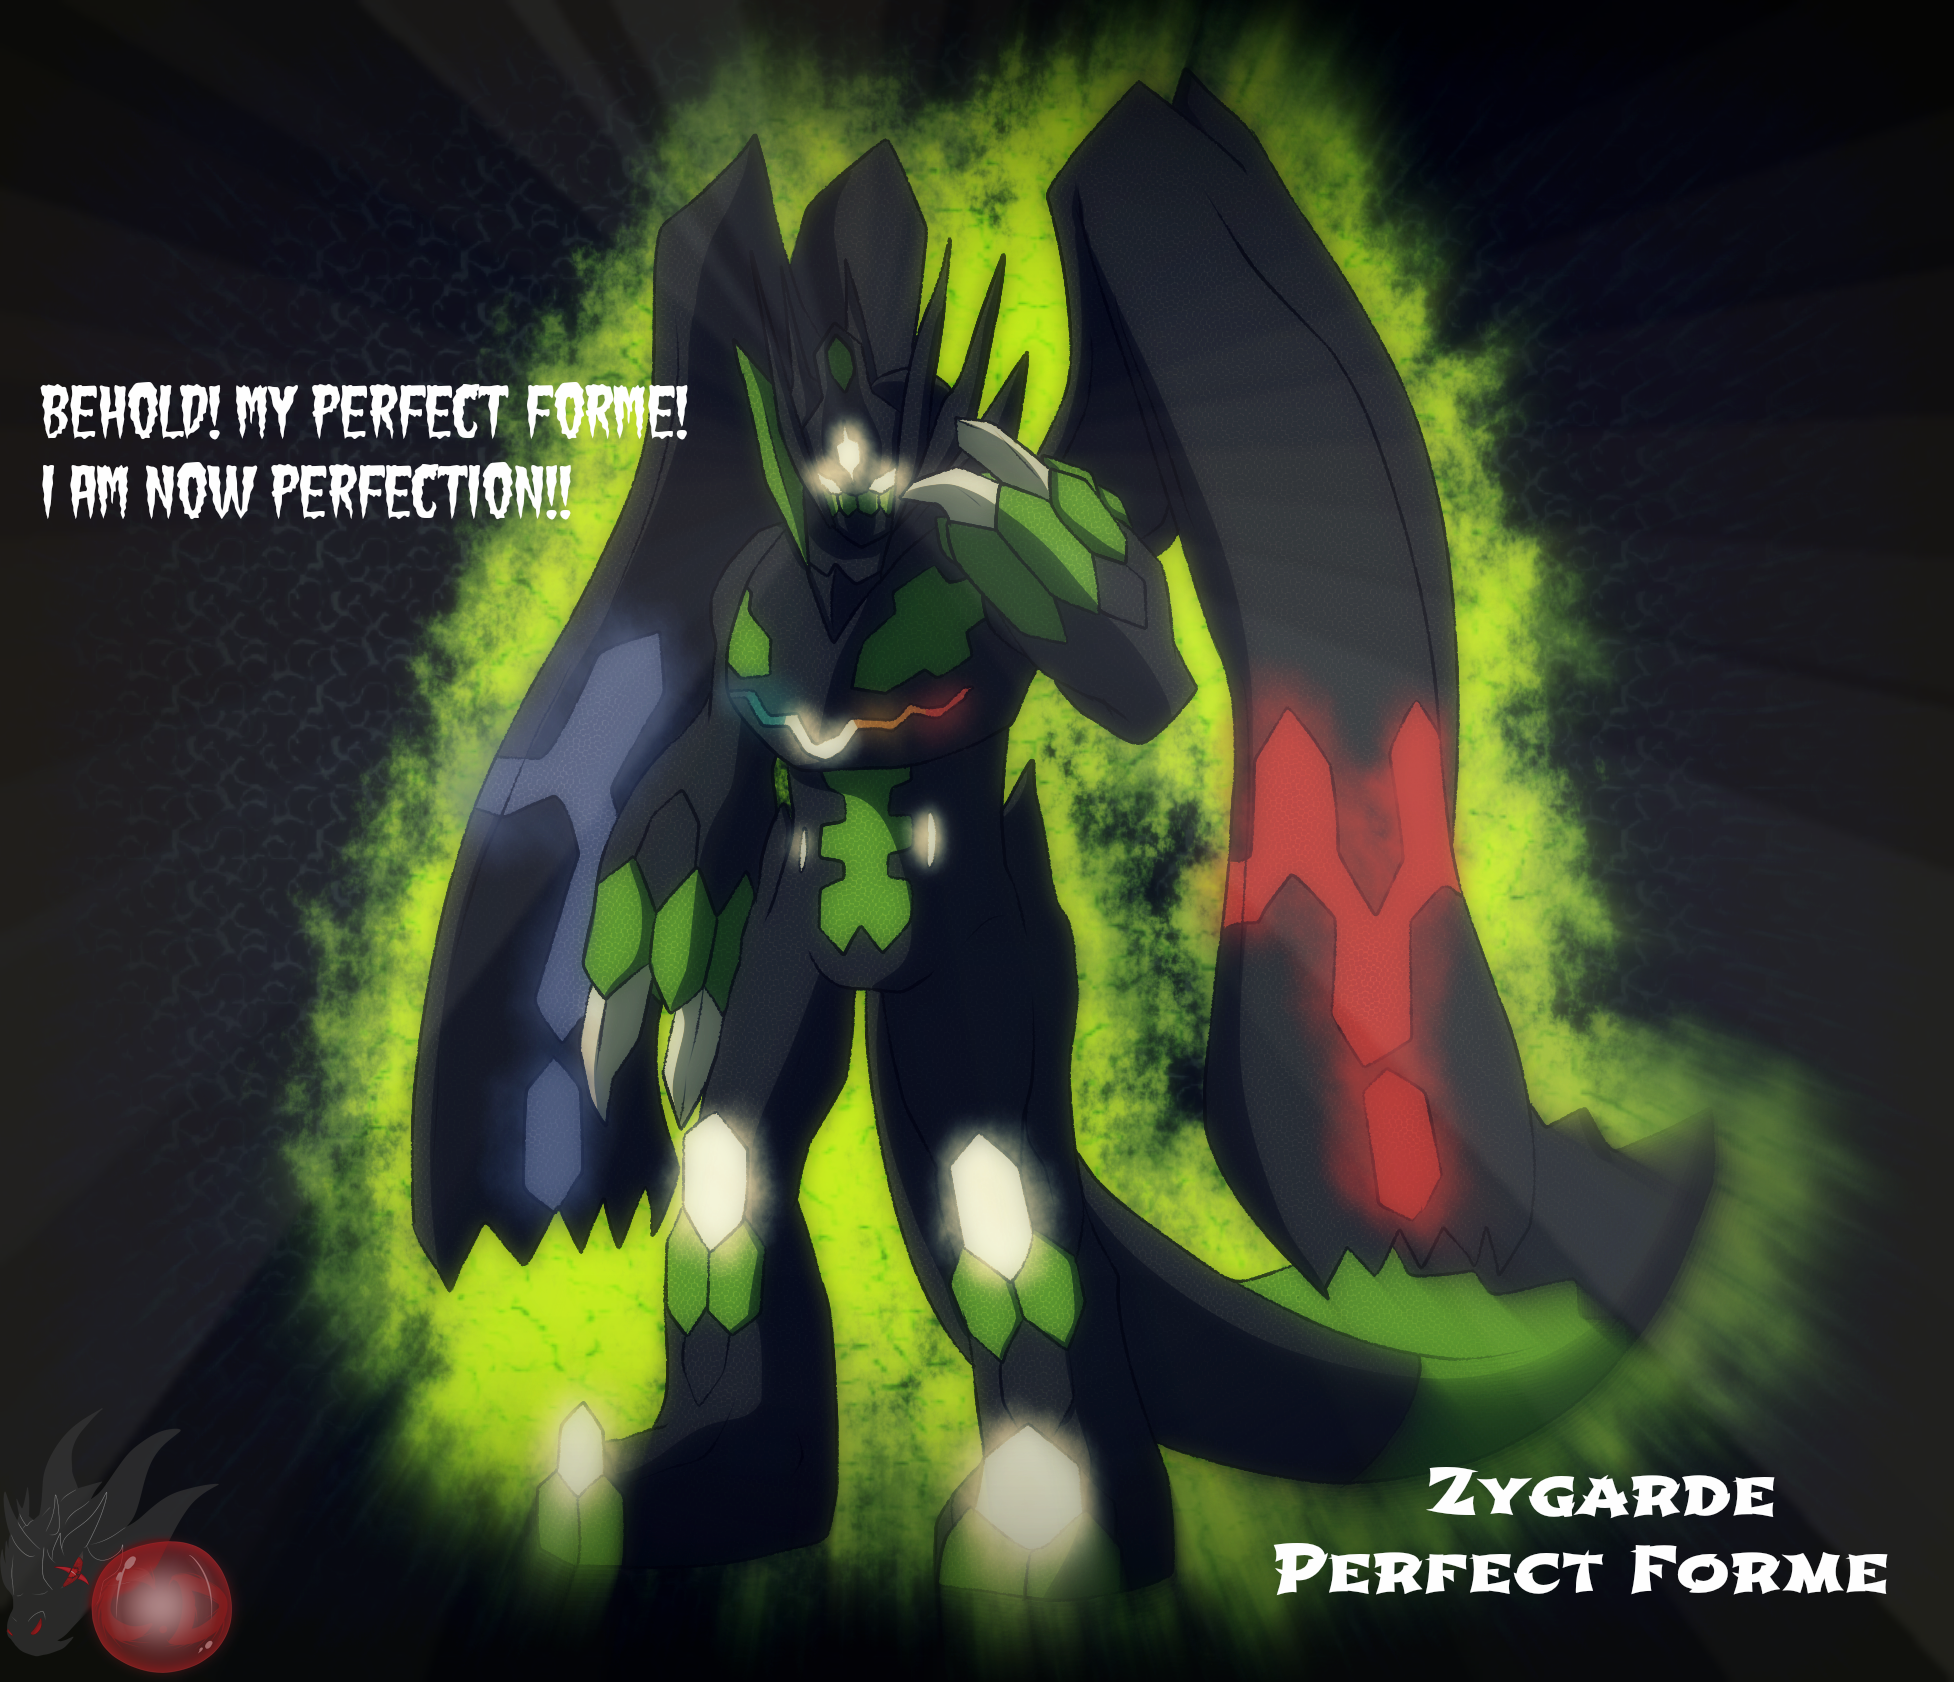 Zygarde Perfect Forme by ColorDrake on DeviantArt